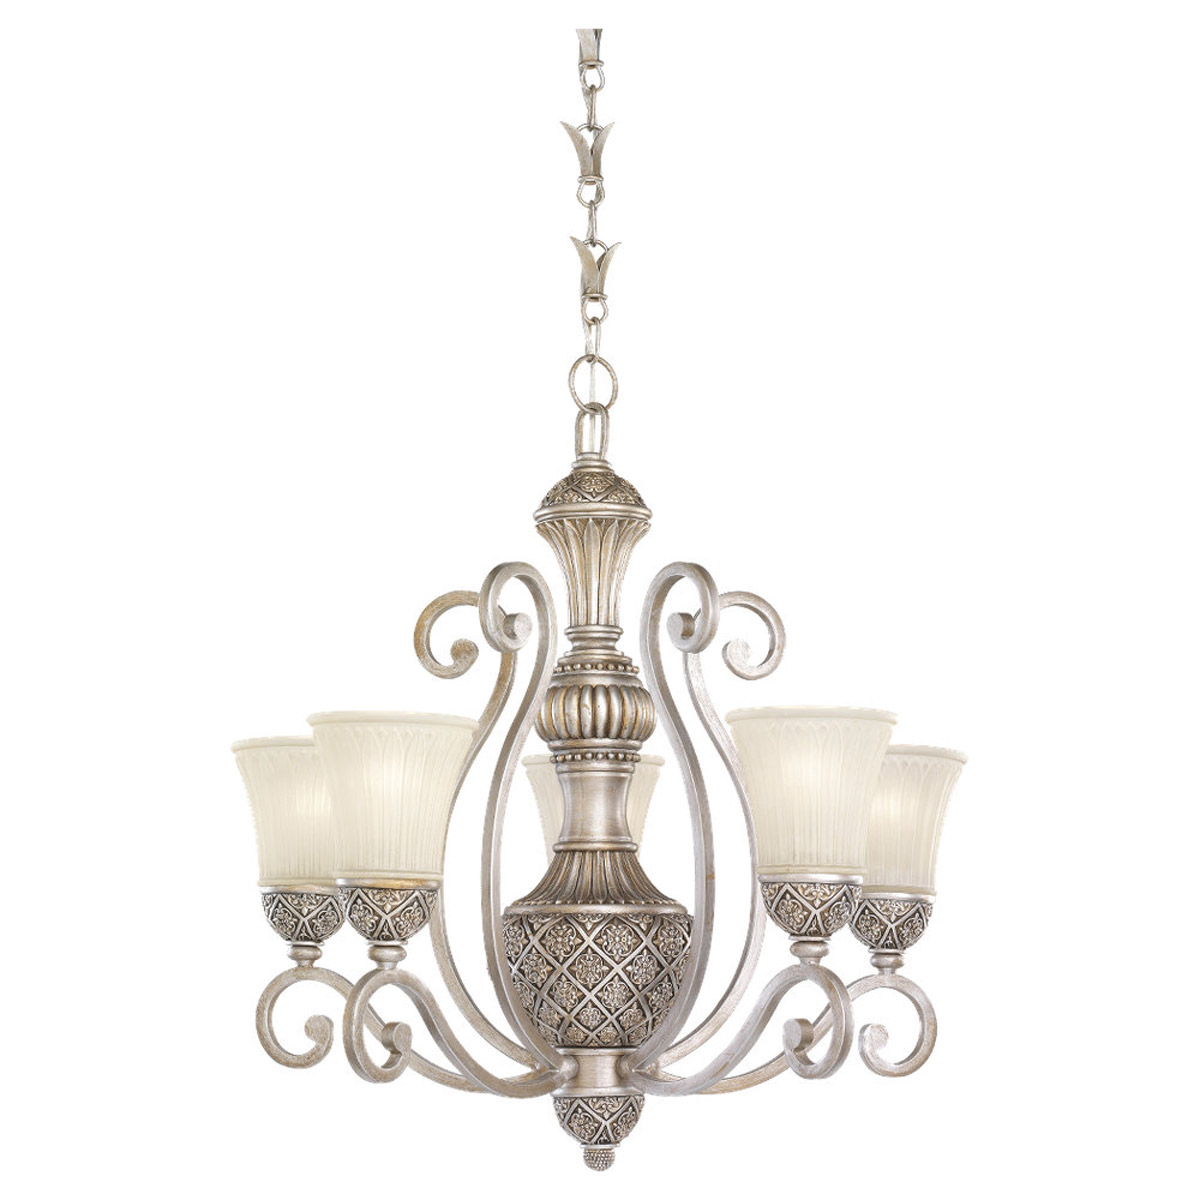 Sea Gull Lighting Highlands 5 Light Chandelier in Palladium 31751-824 photo